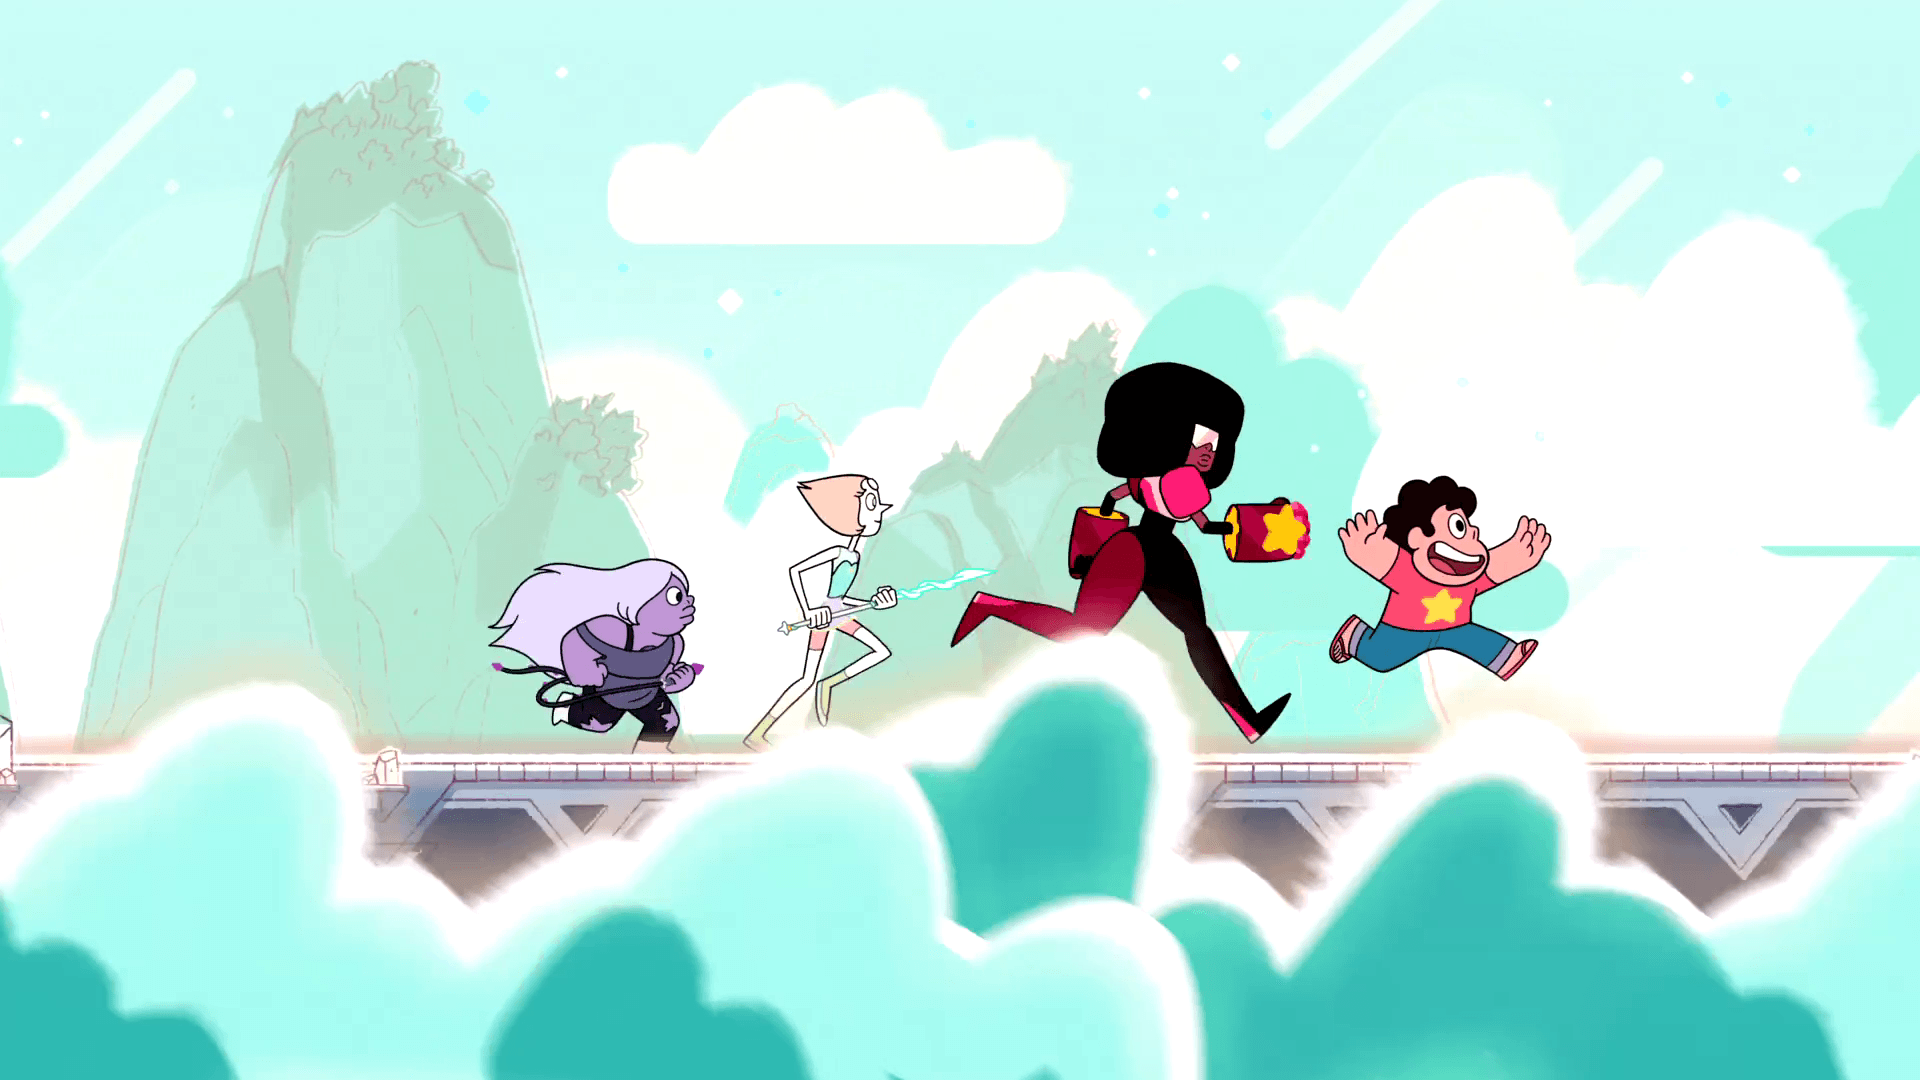 Steven universe, Universe and Wallpaper pc on Pinterest